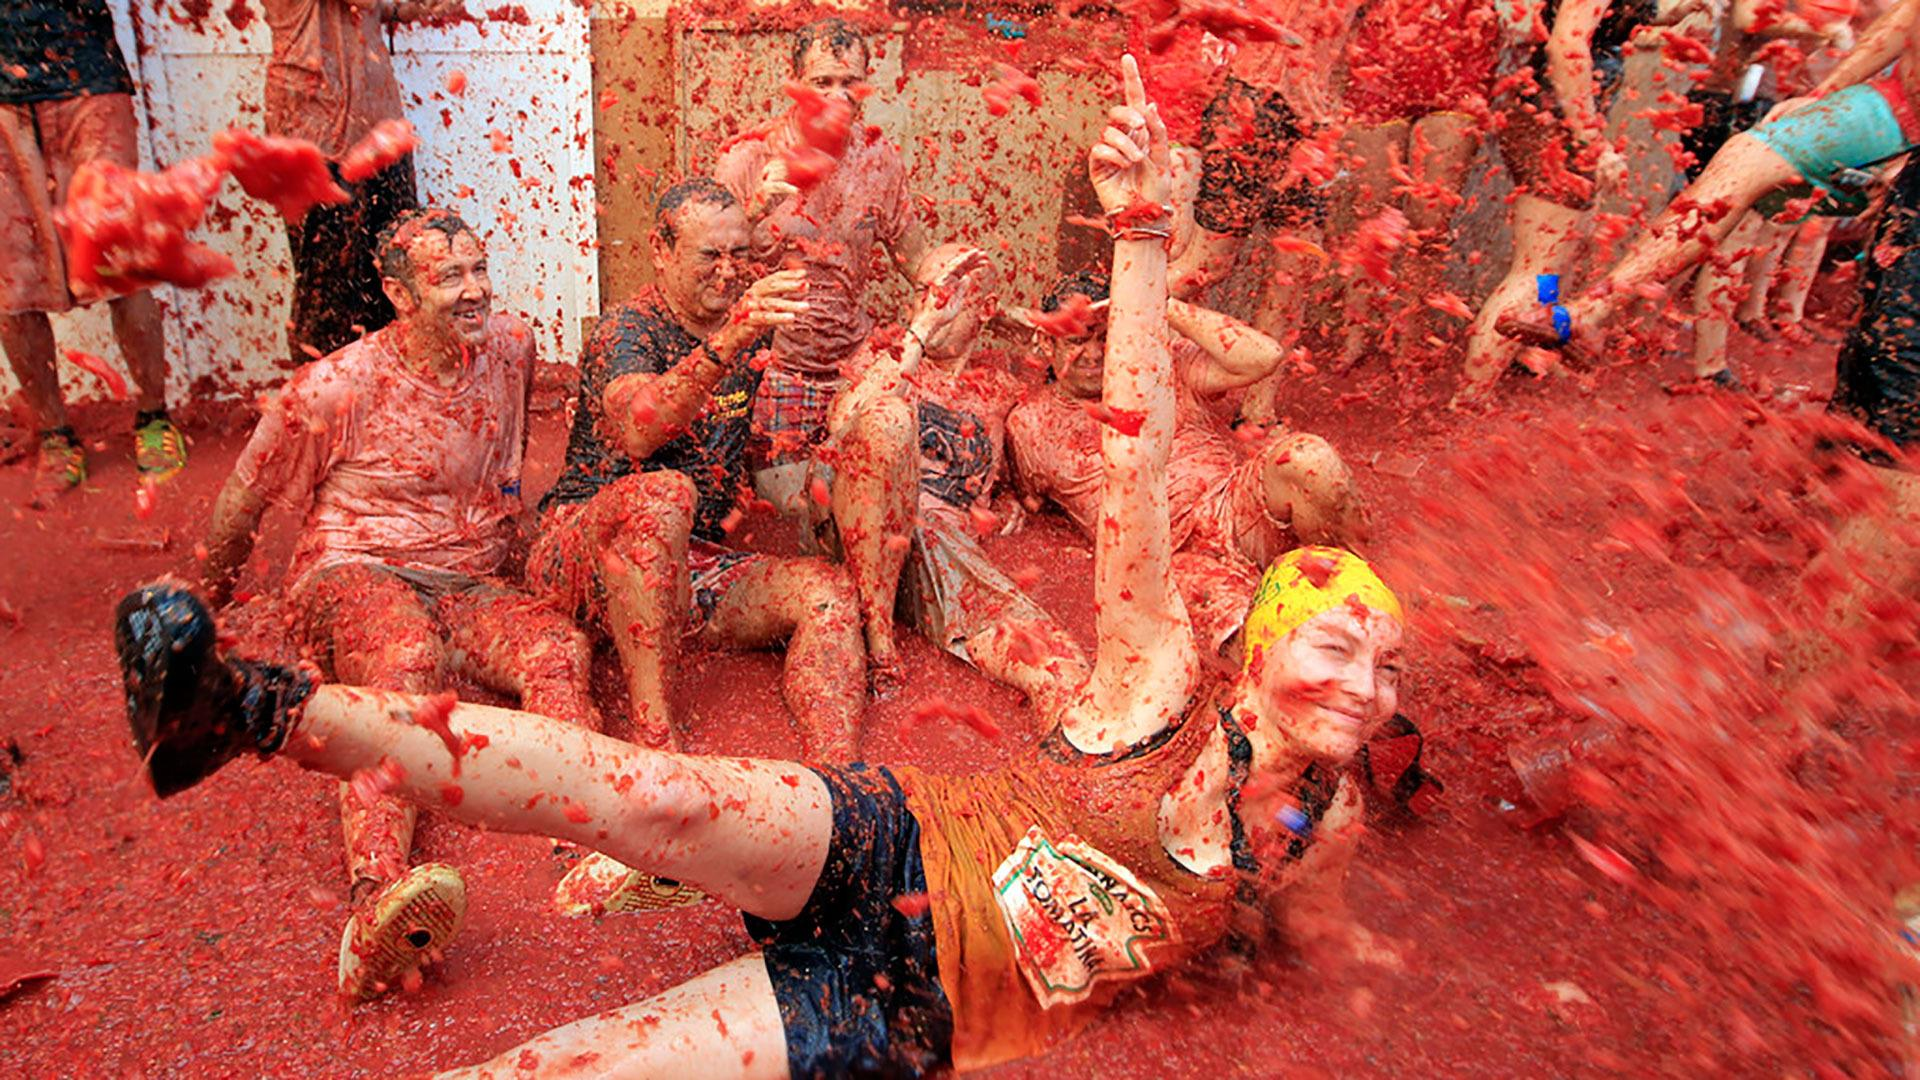 La Tomatina Hot Girls Soaked In Tomato Sauce